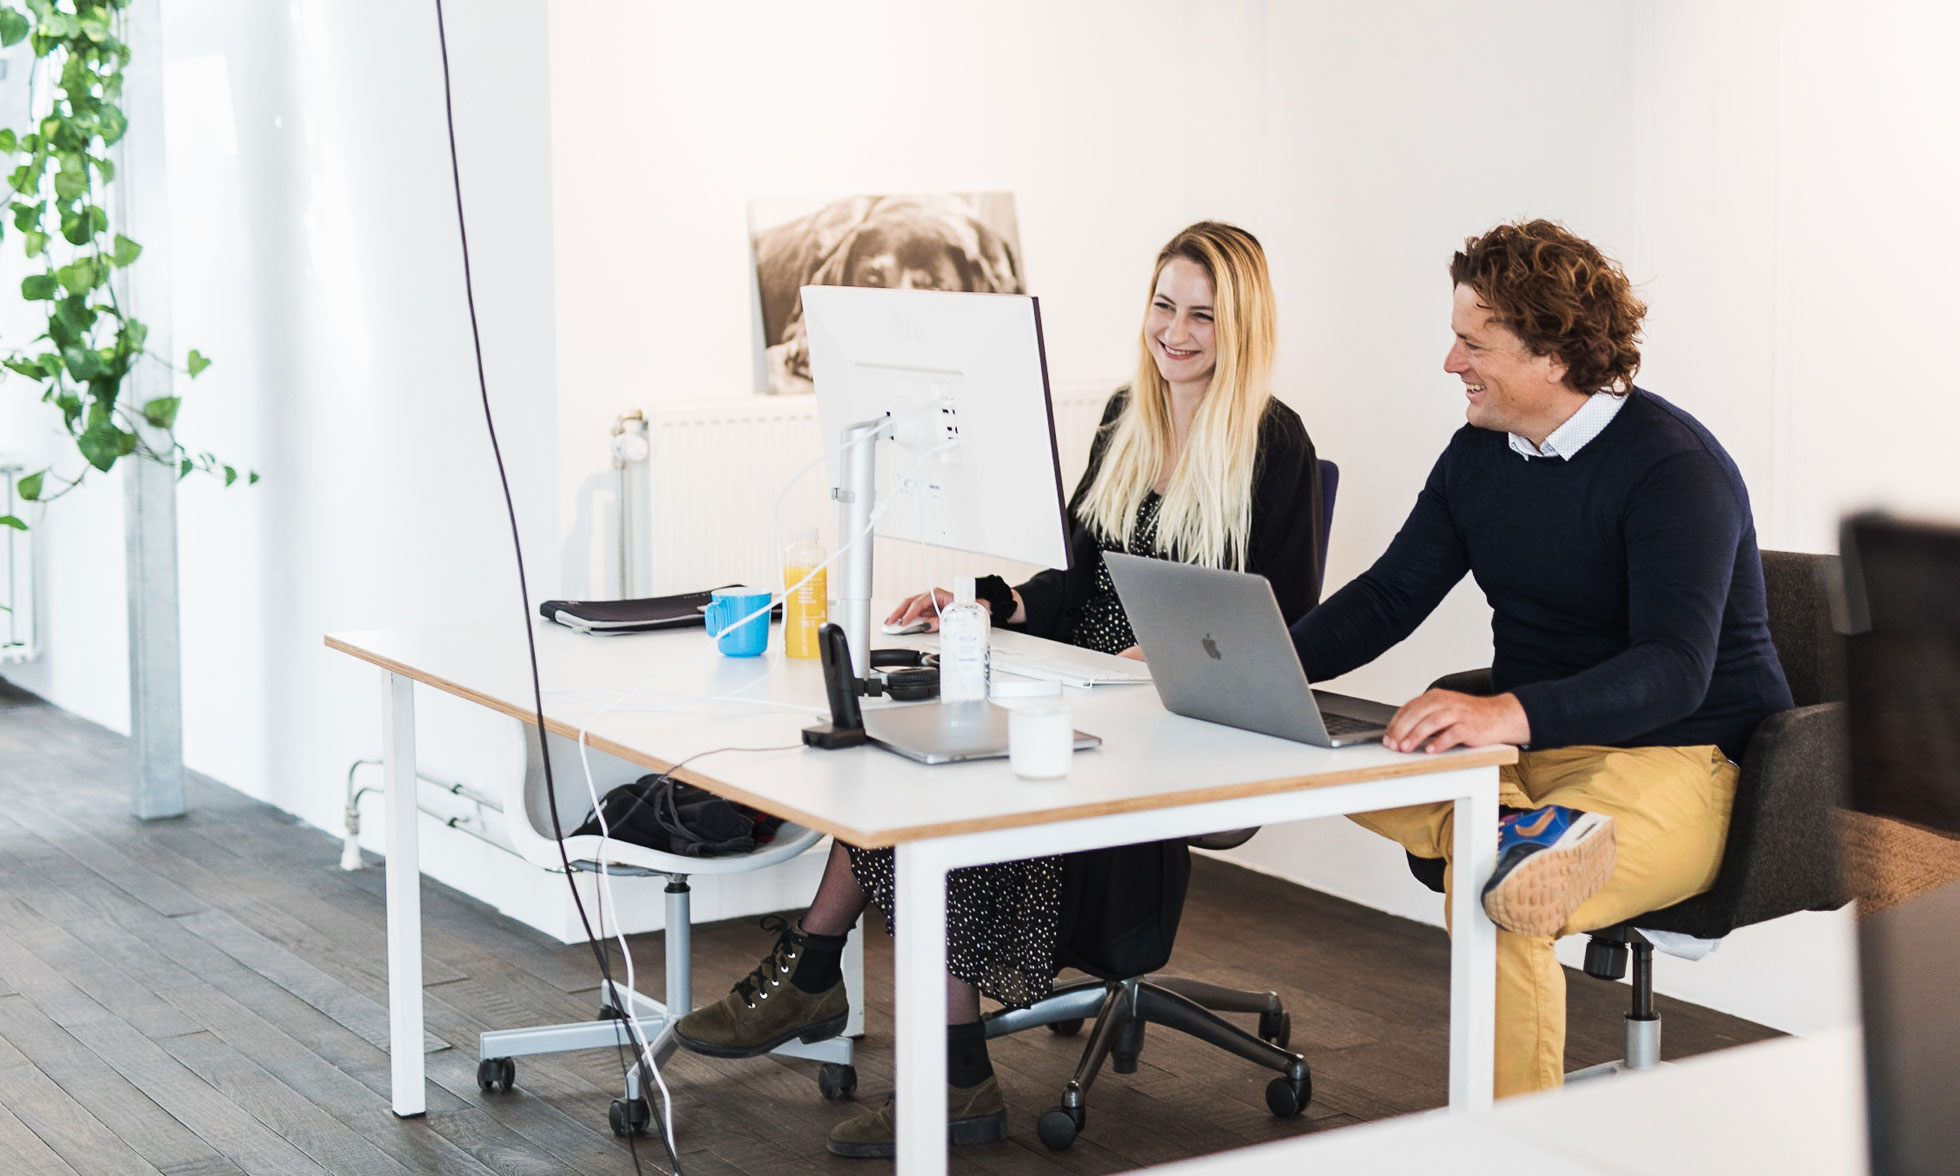 Robbert de Smit with a female colleague at her desk